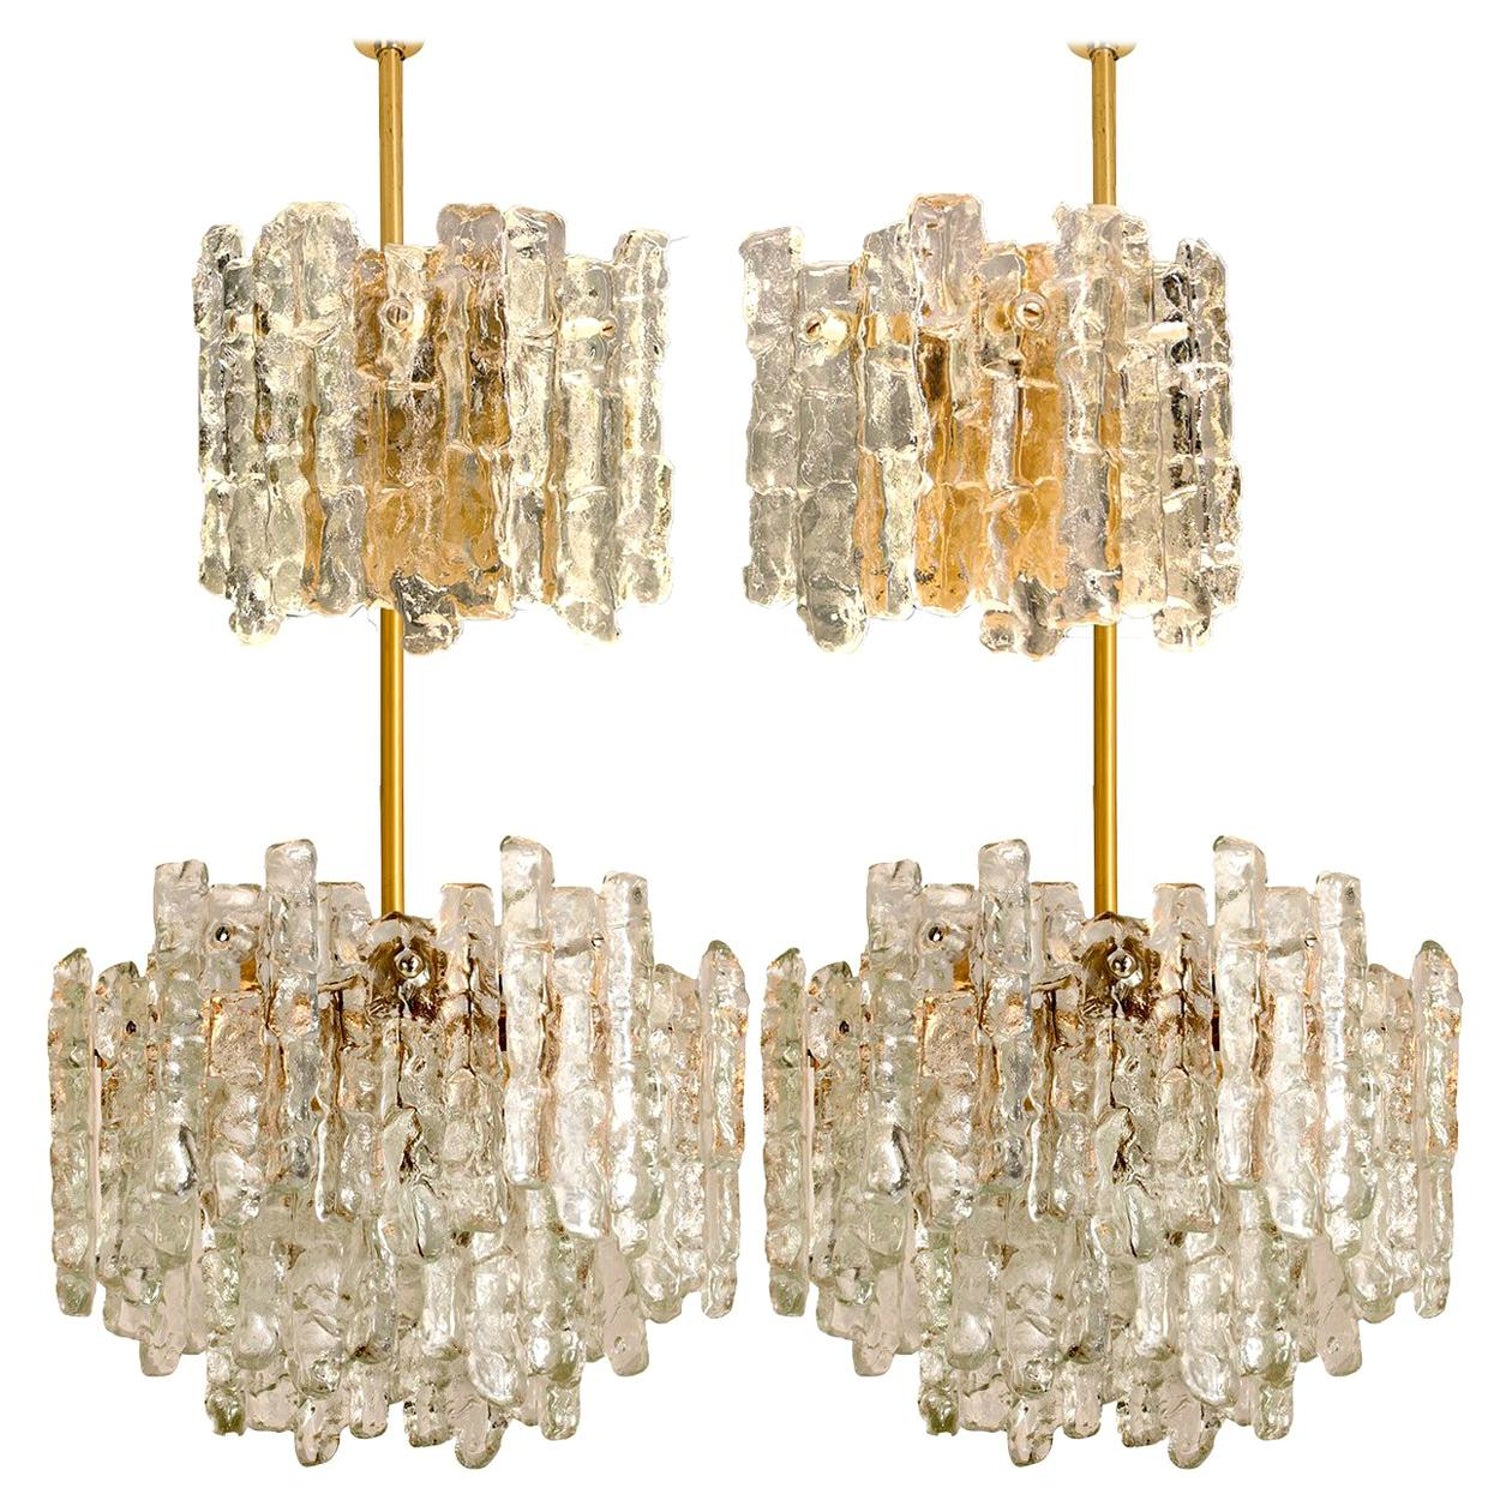 Set of four kalmar ice glass light fixtures two wall scones and two chandeliers for sale at 1stdibs